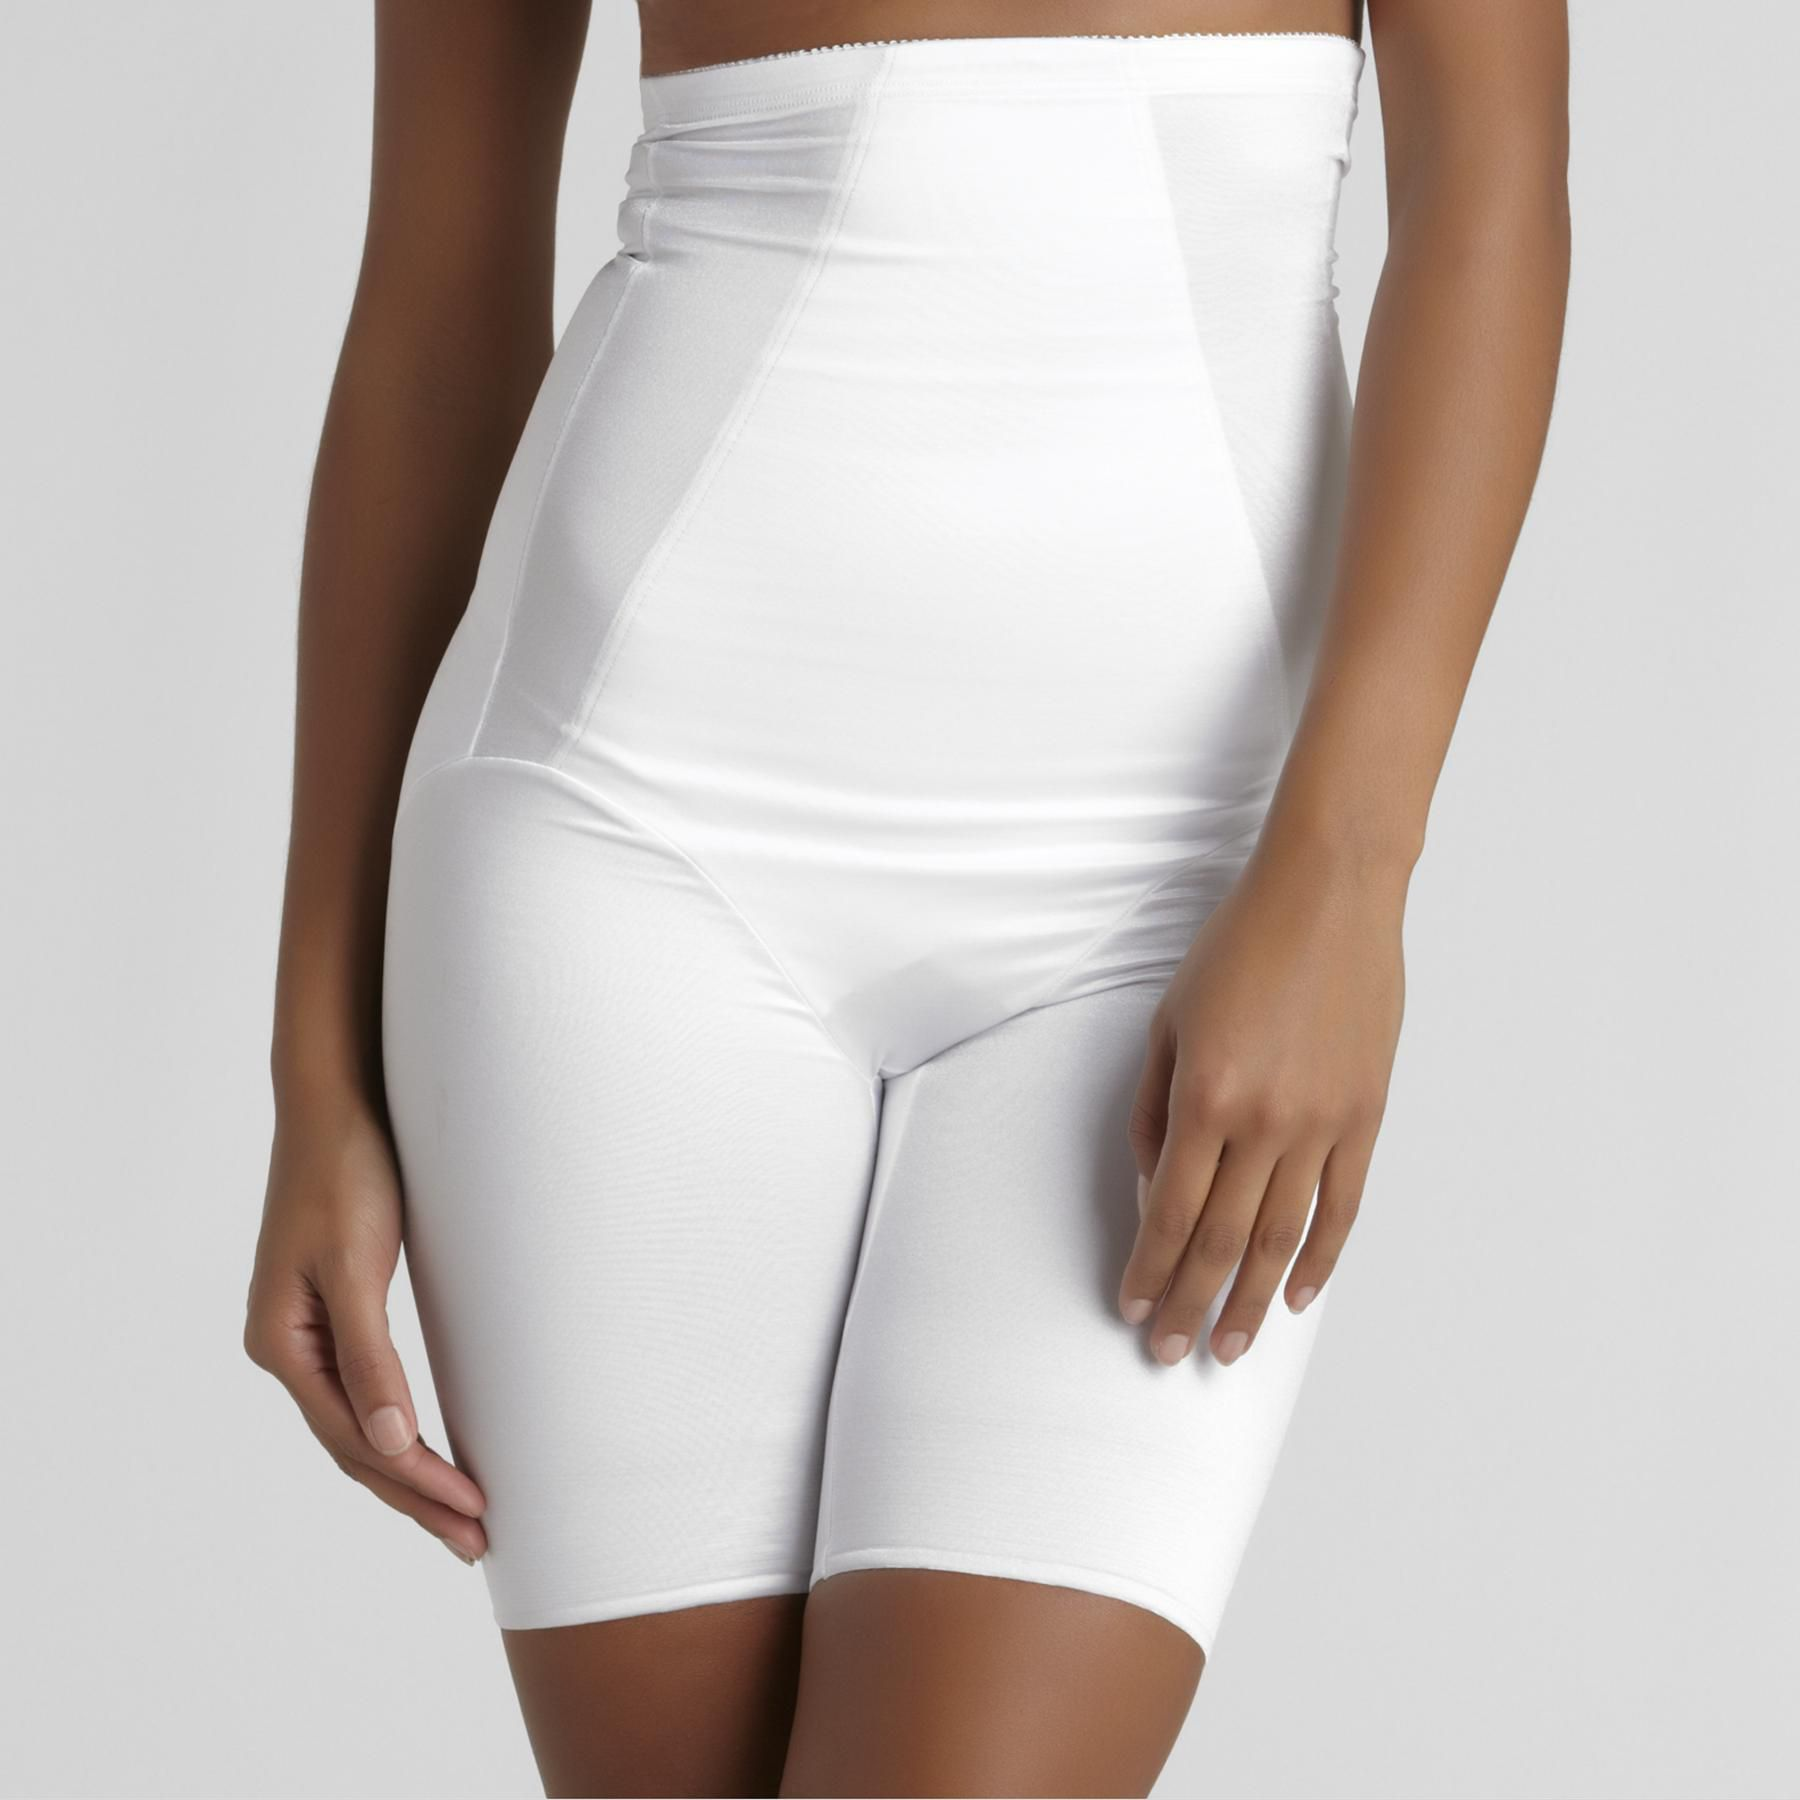 Slim Shape Women's Long Leg Shaper at Kmart.com